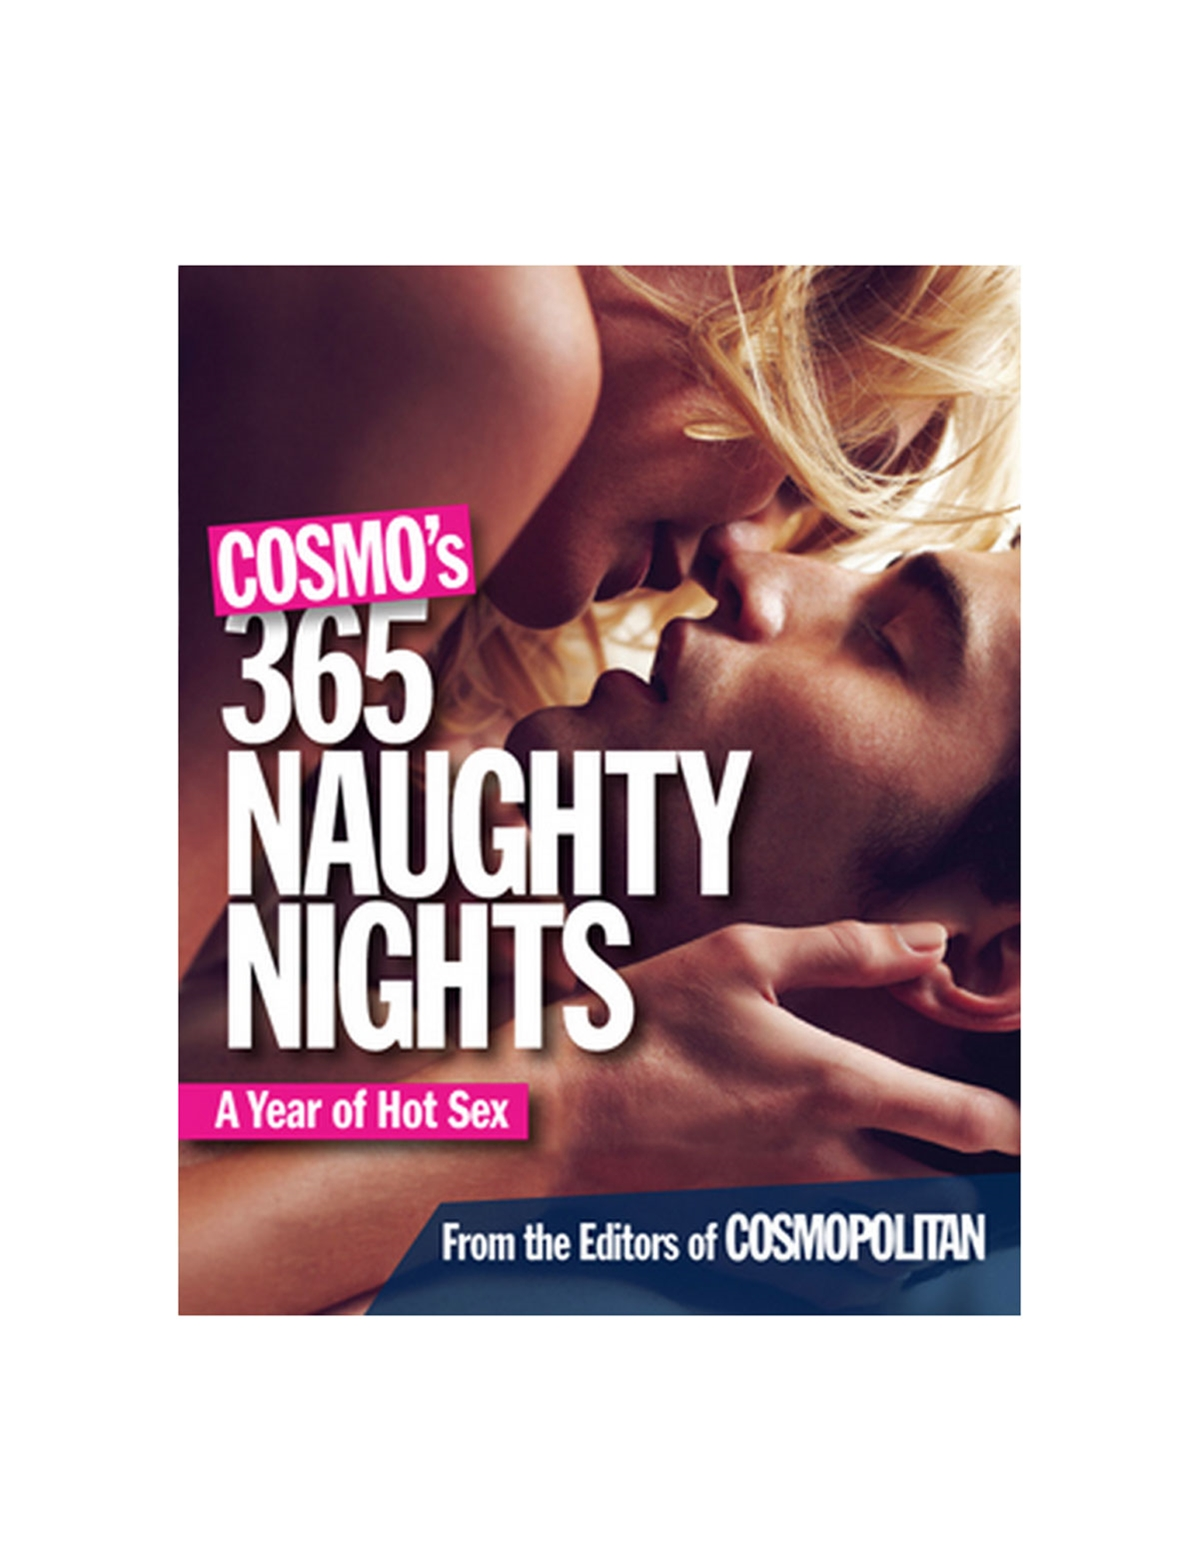 Cosmos 365 Naughty Nights Book